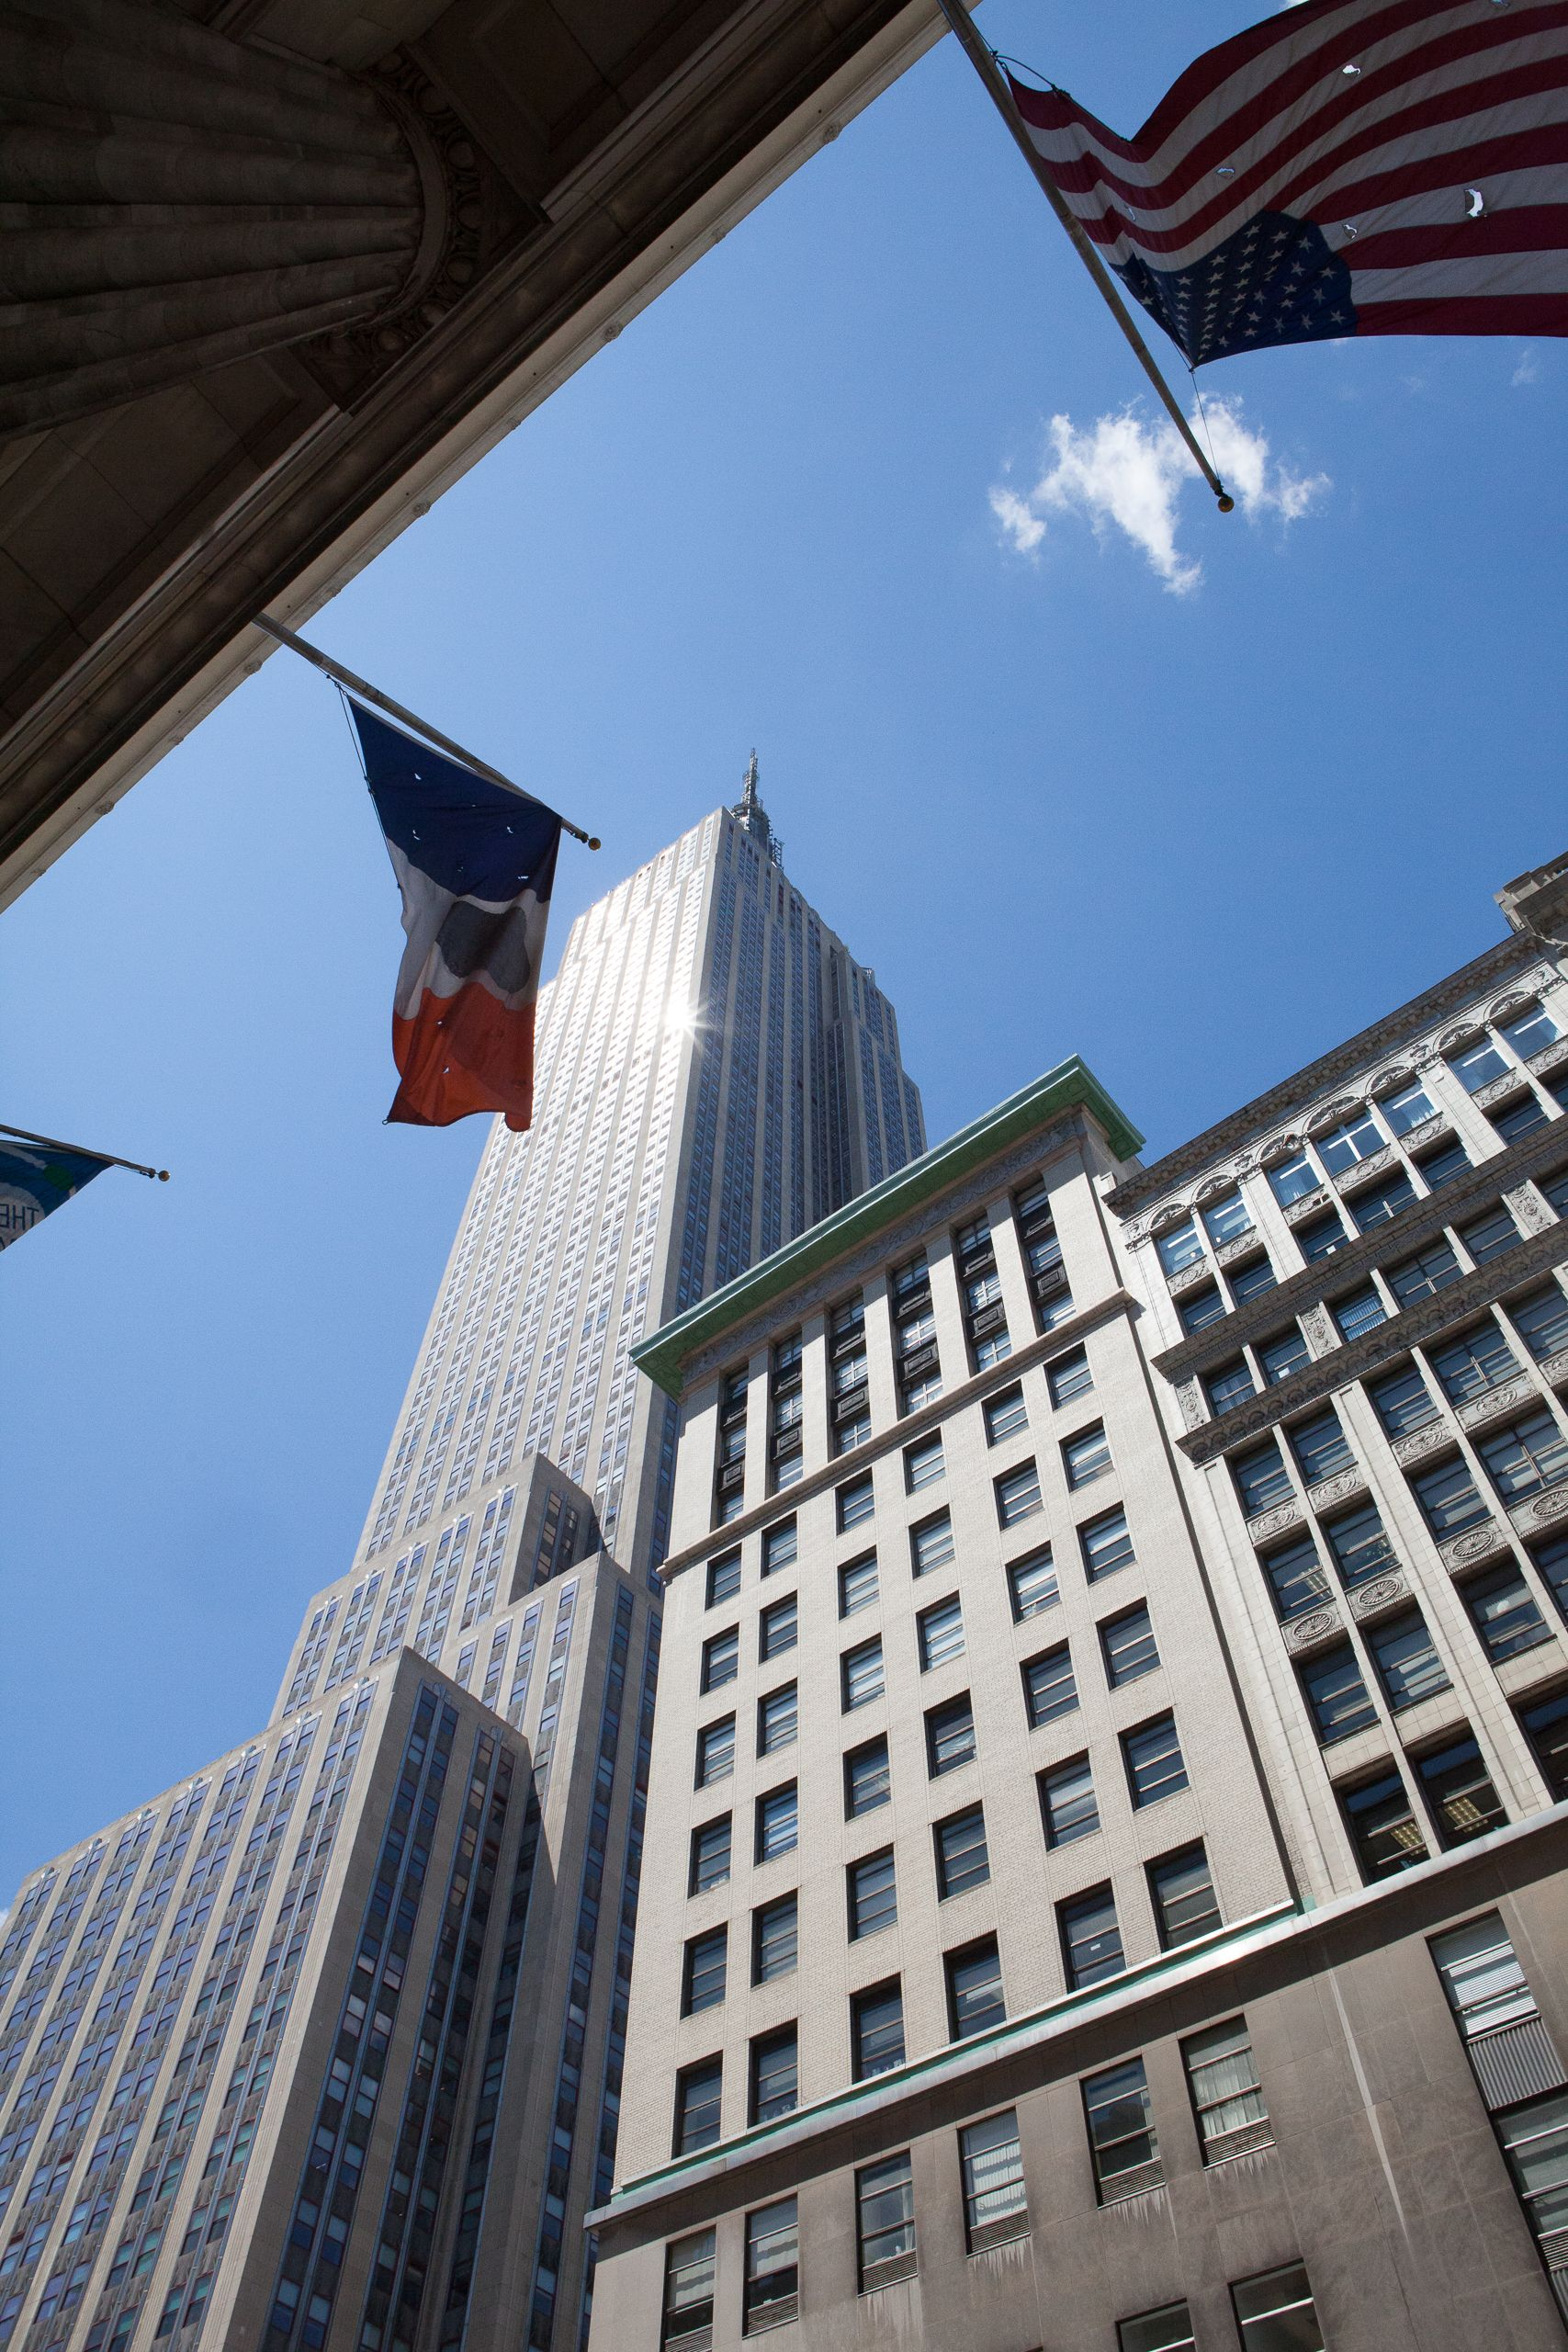 The Empire State Building from base